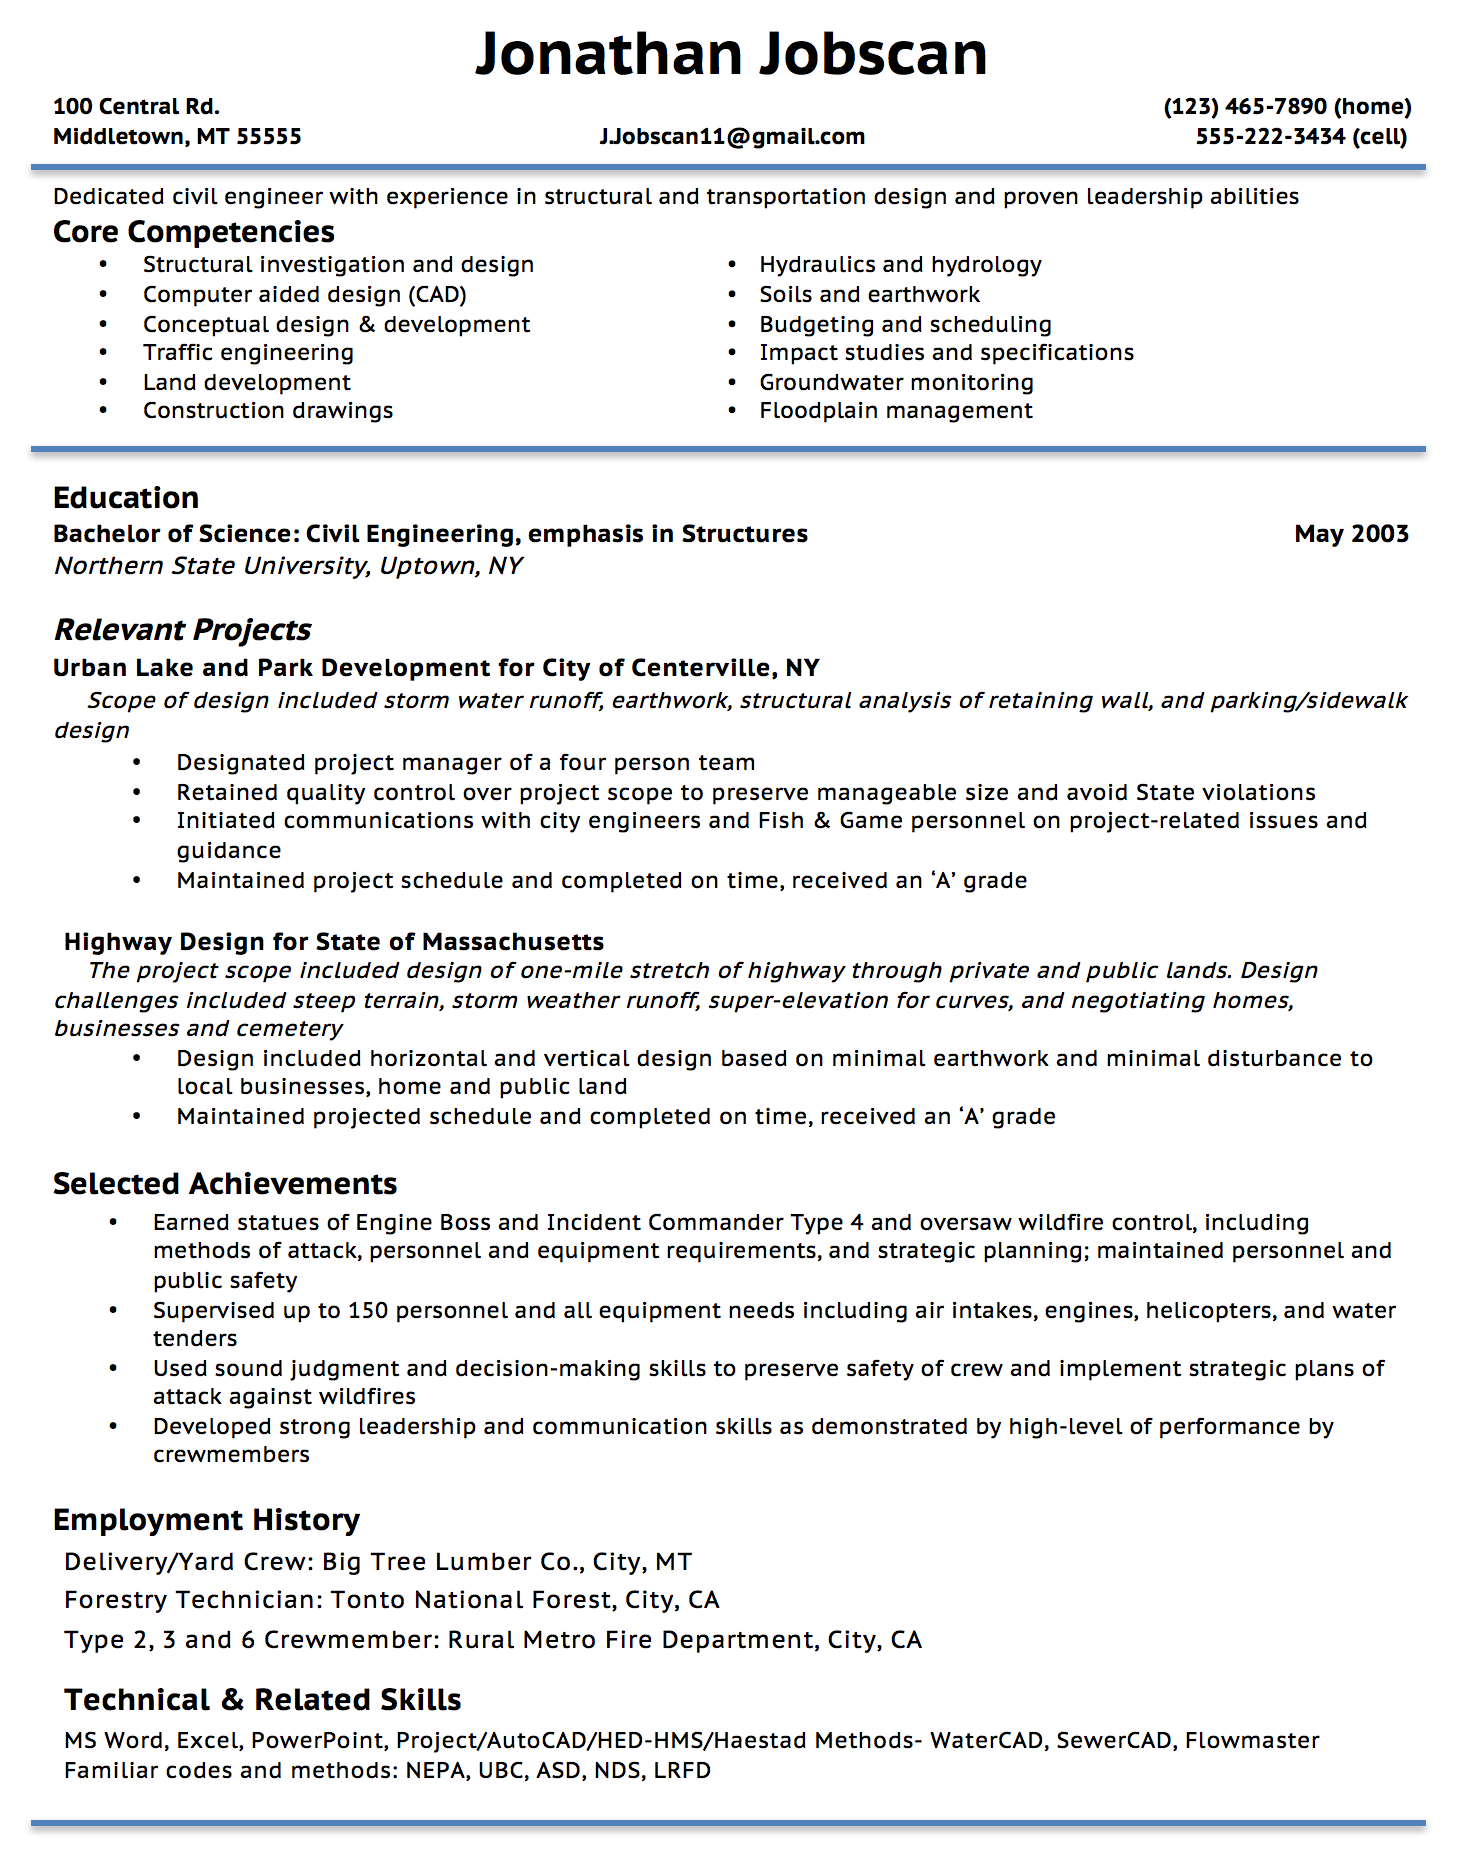 Opposenewapstandardsus  Inspiring Resume Writing Guide  Jobscan With Exciting Example Of A Functional Resume Format With Divine Nurse Resume Objective Also Medical Administrative Assistant Resume In Addition Teacher Resume Skills And How To Add References To Resume As Well As Resume For Grad School Additionally General Objectives For Resume From Jobscanco With Opposenewapstandardsus  Exciting Resume Writing Guide  Jobscan With Divine Example Of A Functional Resume Format And Inspiring Nurse Resume Objective Also Medical Administrative Assistant Resume In Addition Teacher Resume Skills From Jobscanco